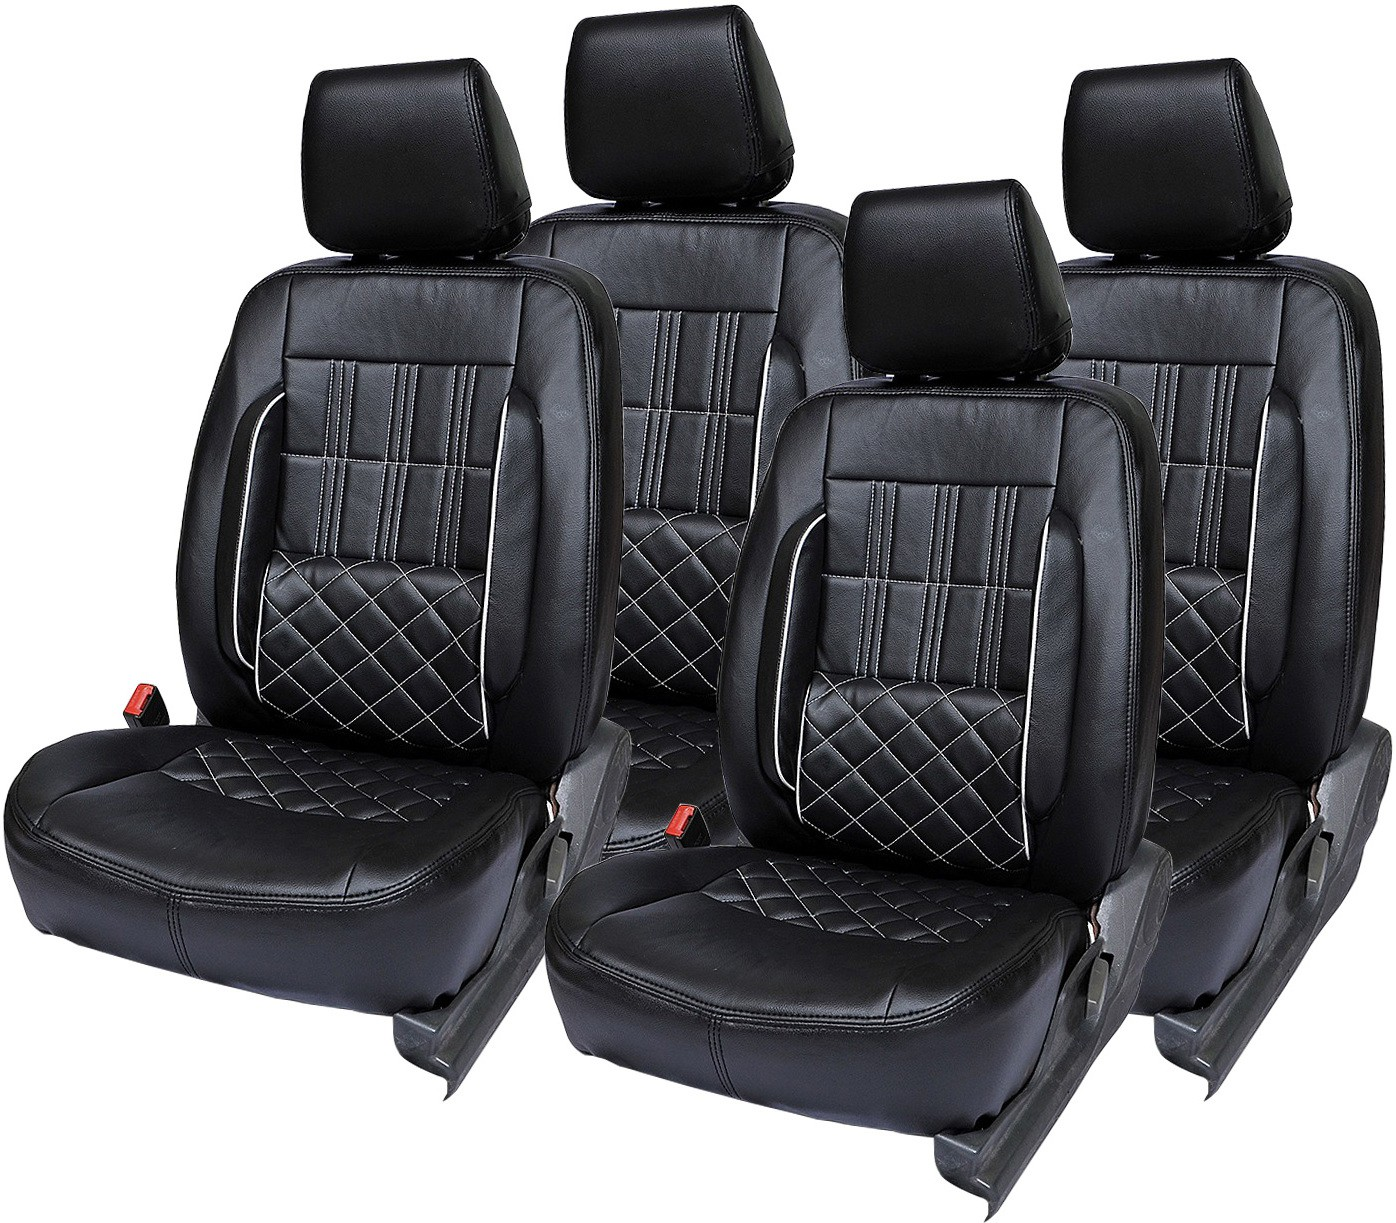 Deals | Wide Range Car Seat Cover